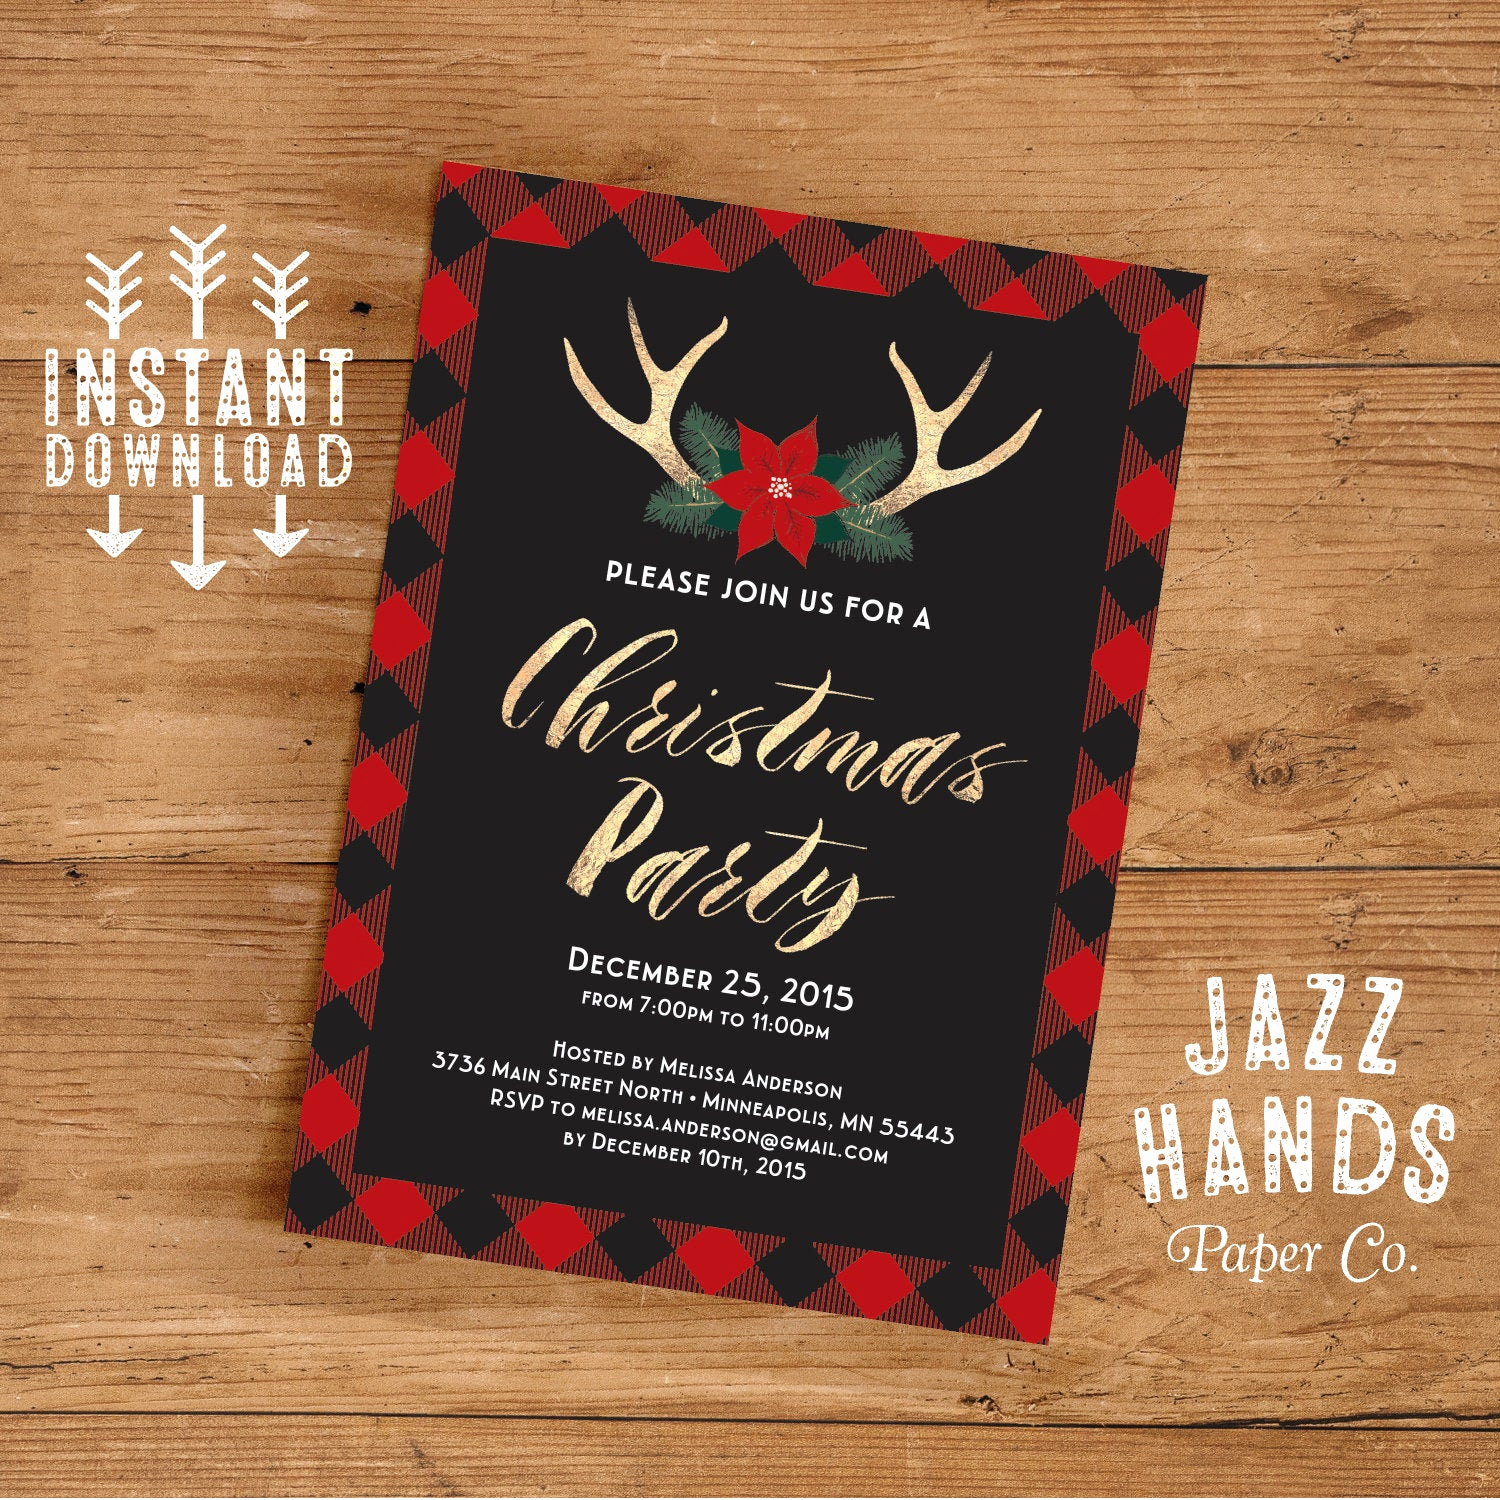 Free Christmas Party Invitation Templates Inspirational Christmas Party Invitation Template Diy Printable Holiday